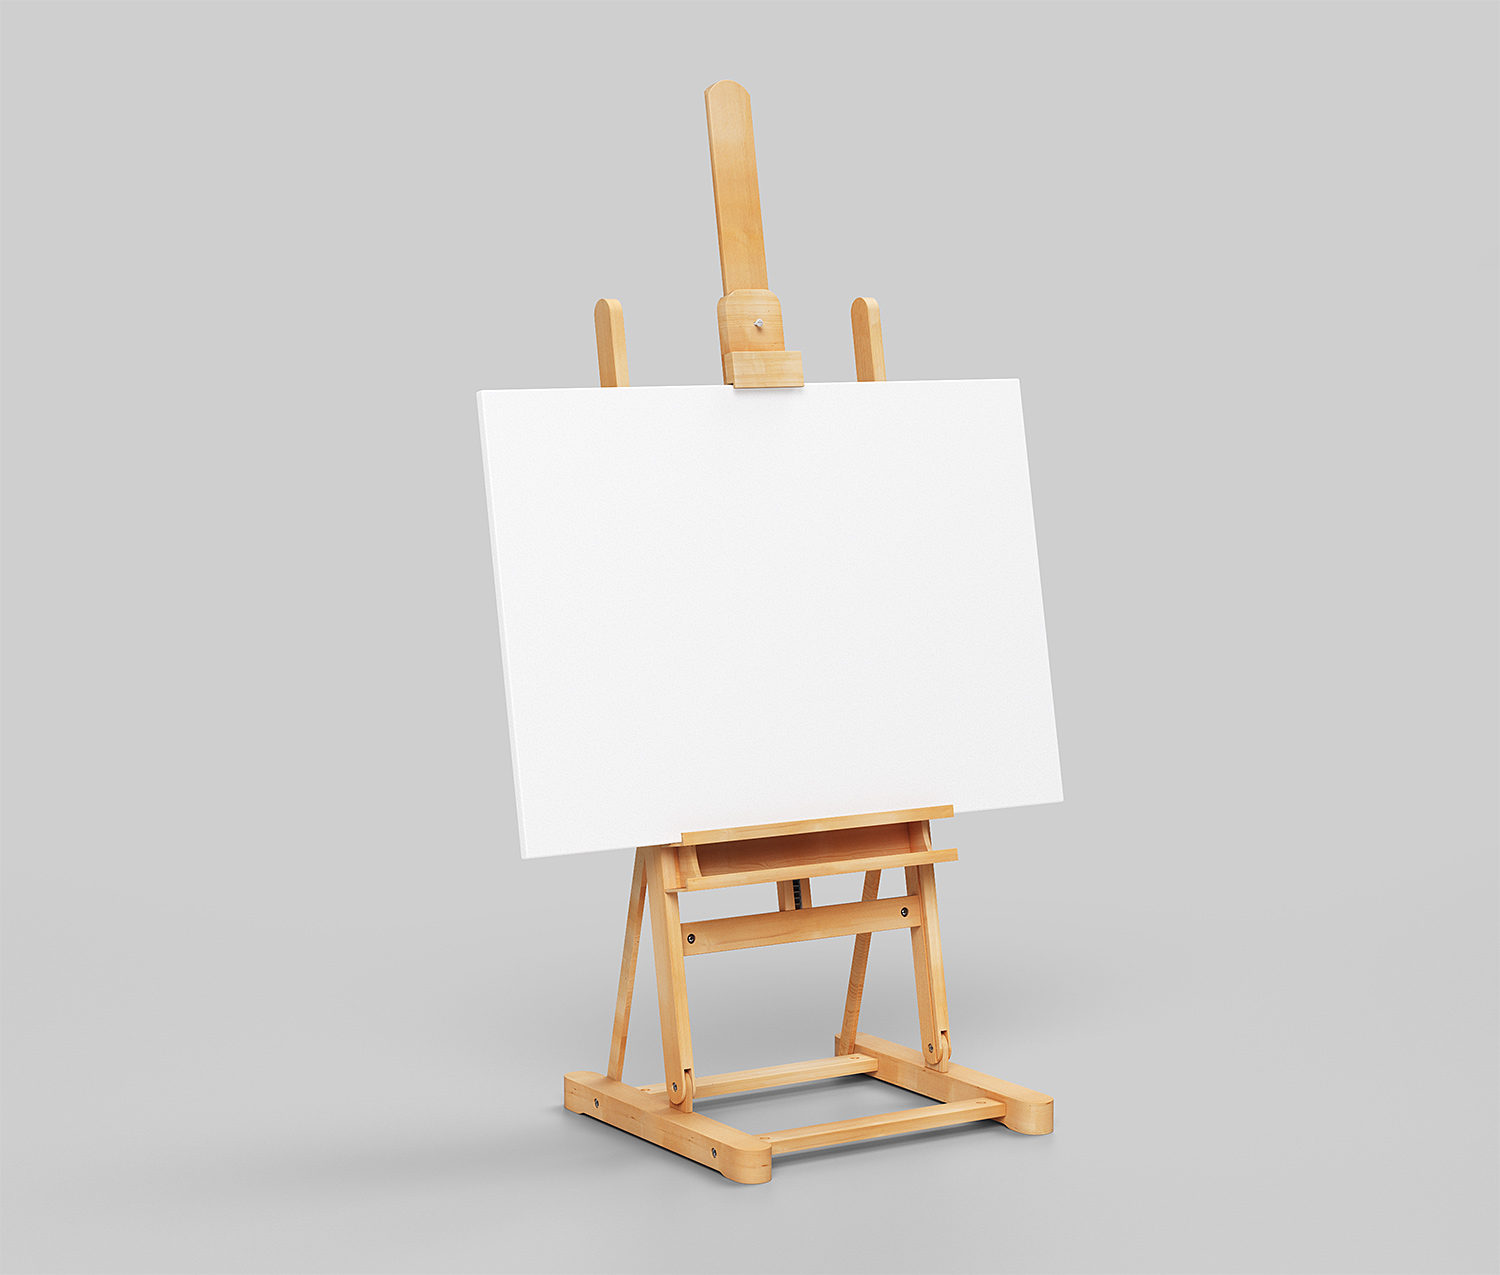 Canvas Poster on Easel Mockup Free